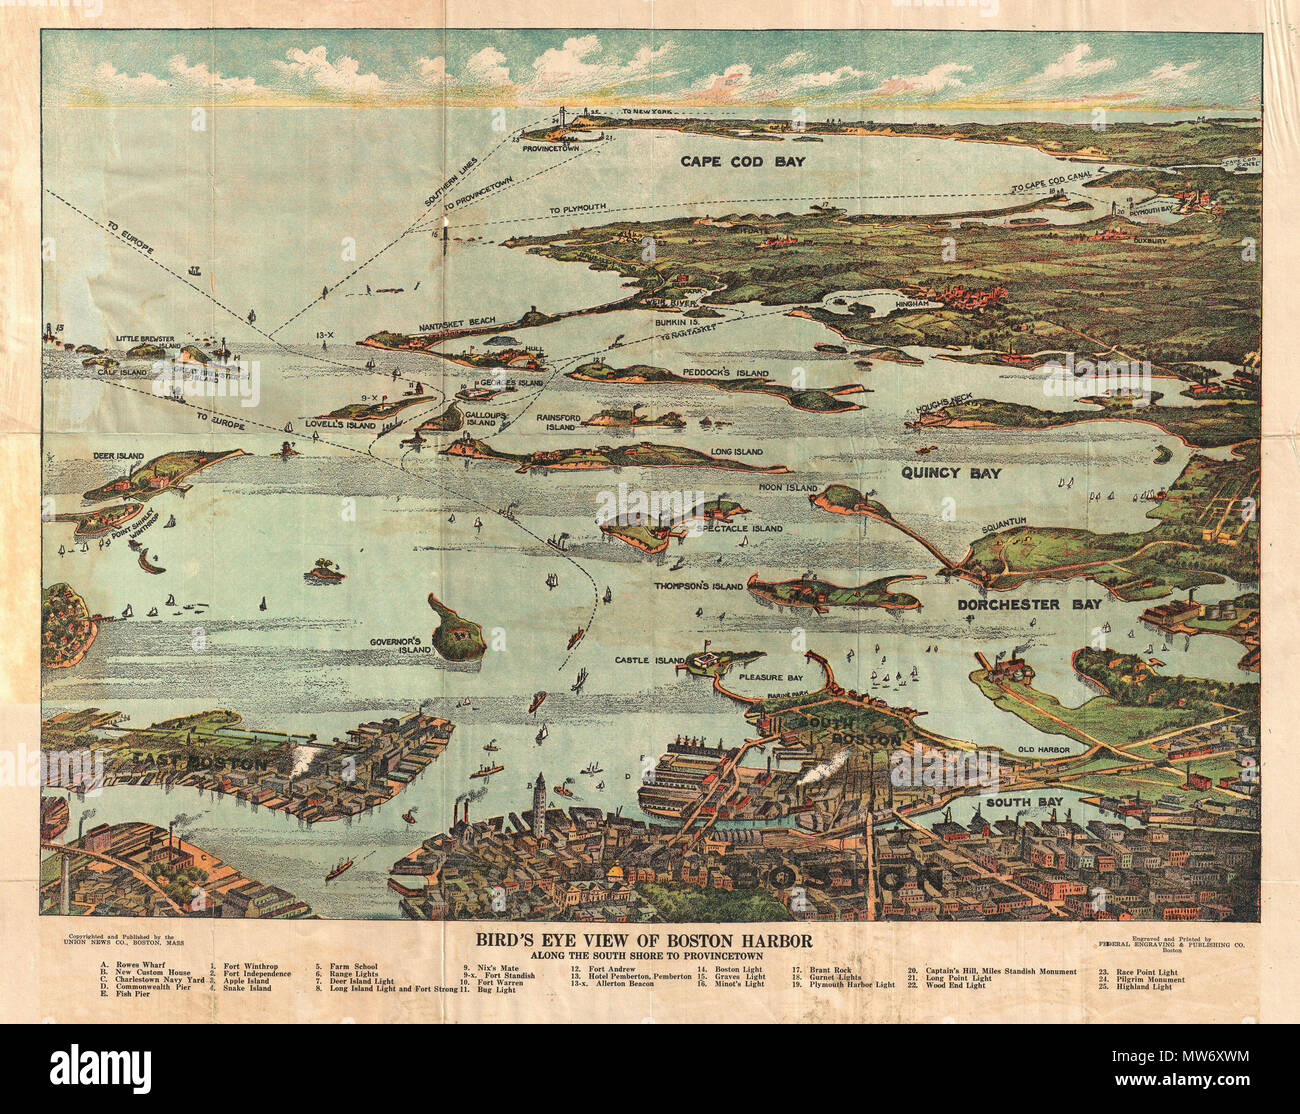 . Bird's Eye View of Boston Harbor in colors Along the South Shore to Plymouth Cape Code Canal and Provincetown Showing all Steamboat Routes.  English: A remarkable chromolithograph map and view of Boston Harbor from Boston to Provincetown. Includes all of Cape Cod Bay, Quincy Bay and Dorchester Bay with the communities of Boston, East Boston, South Boston, Dorchester, Quincy, Hough's Neck, Mingham, Nantasket, Duxbury, Plymouth, Cohasset, Scituate, and Provincetown noted. Also notes many of the Islands in Boston Harbor including Moon Island, Spectacle Island, Thomson's Island, Long Island, Gov - Stock Image